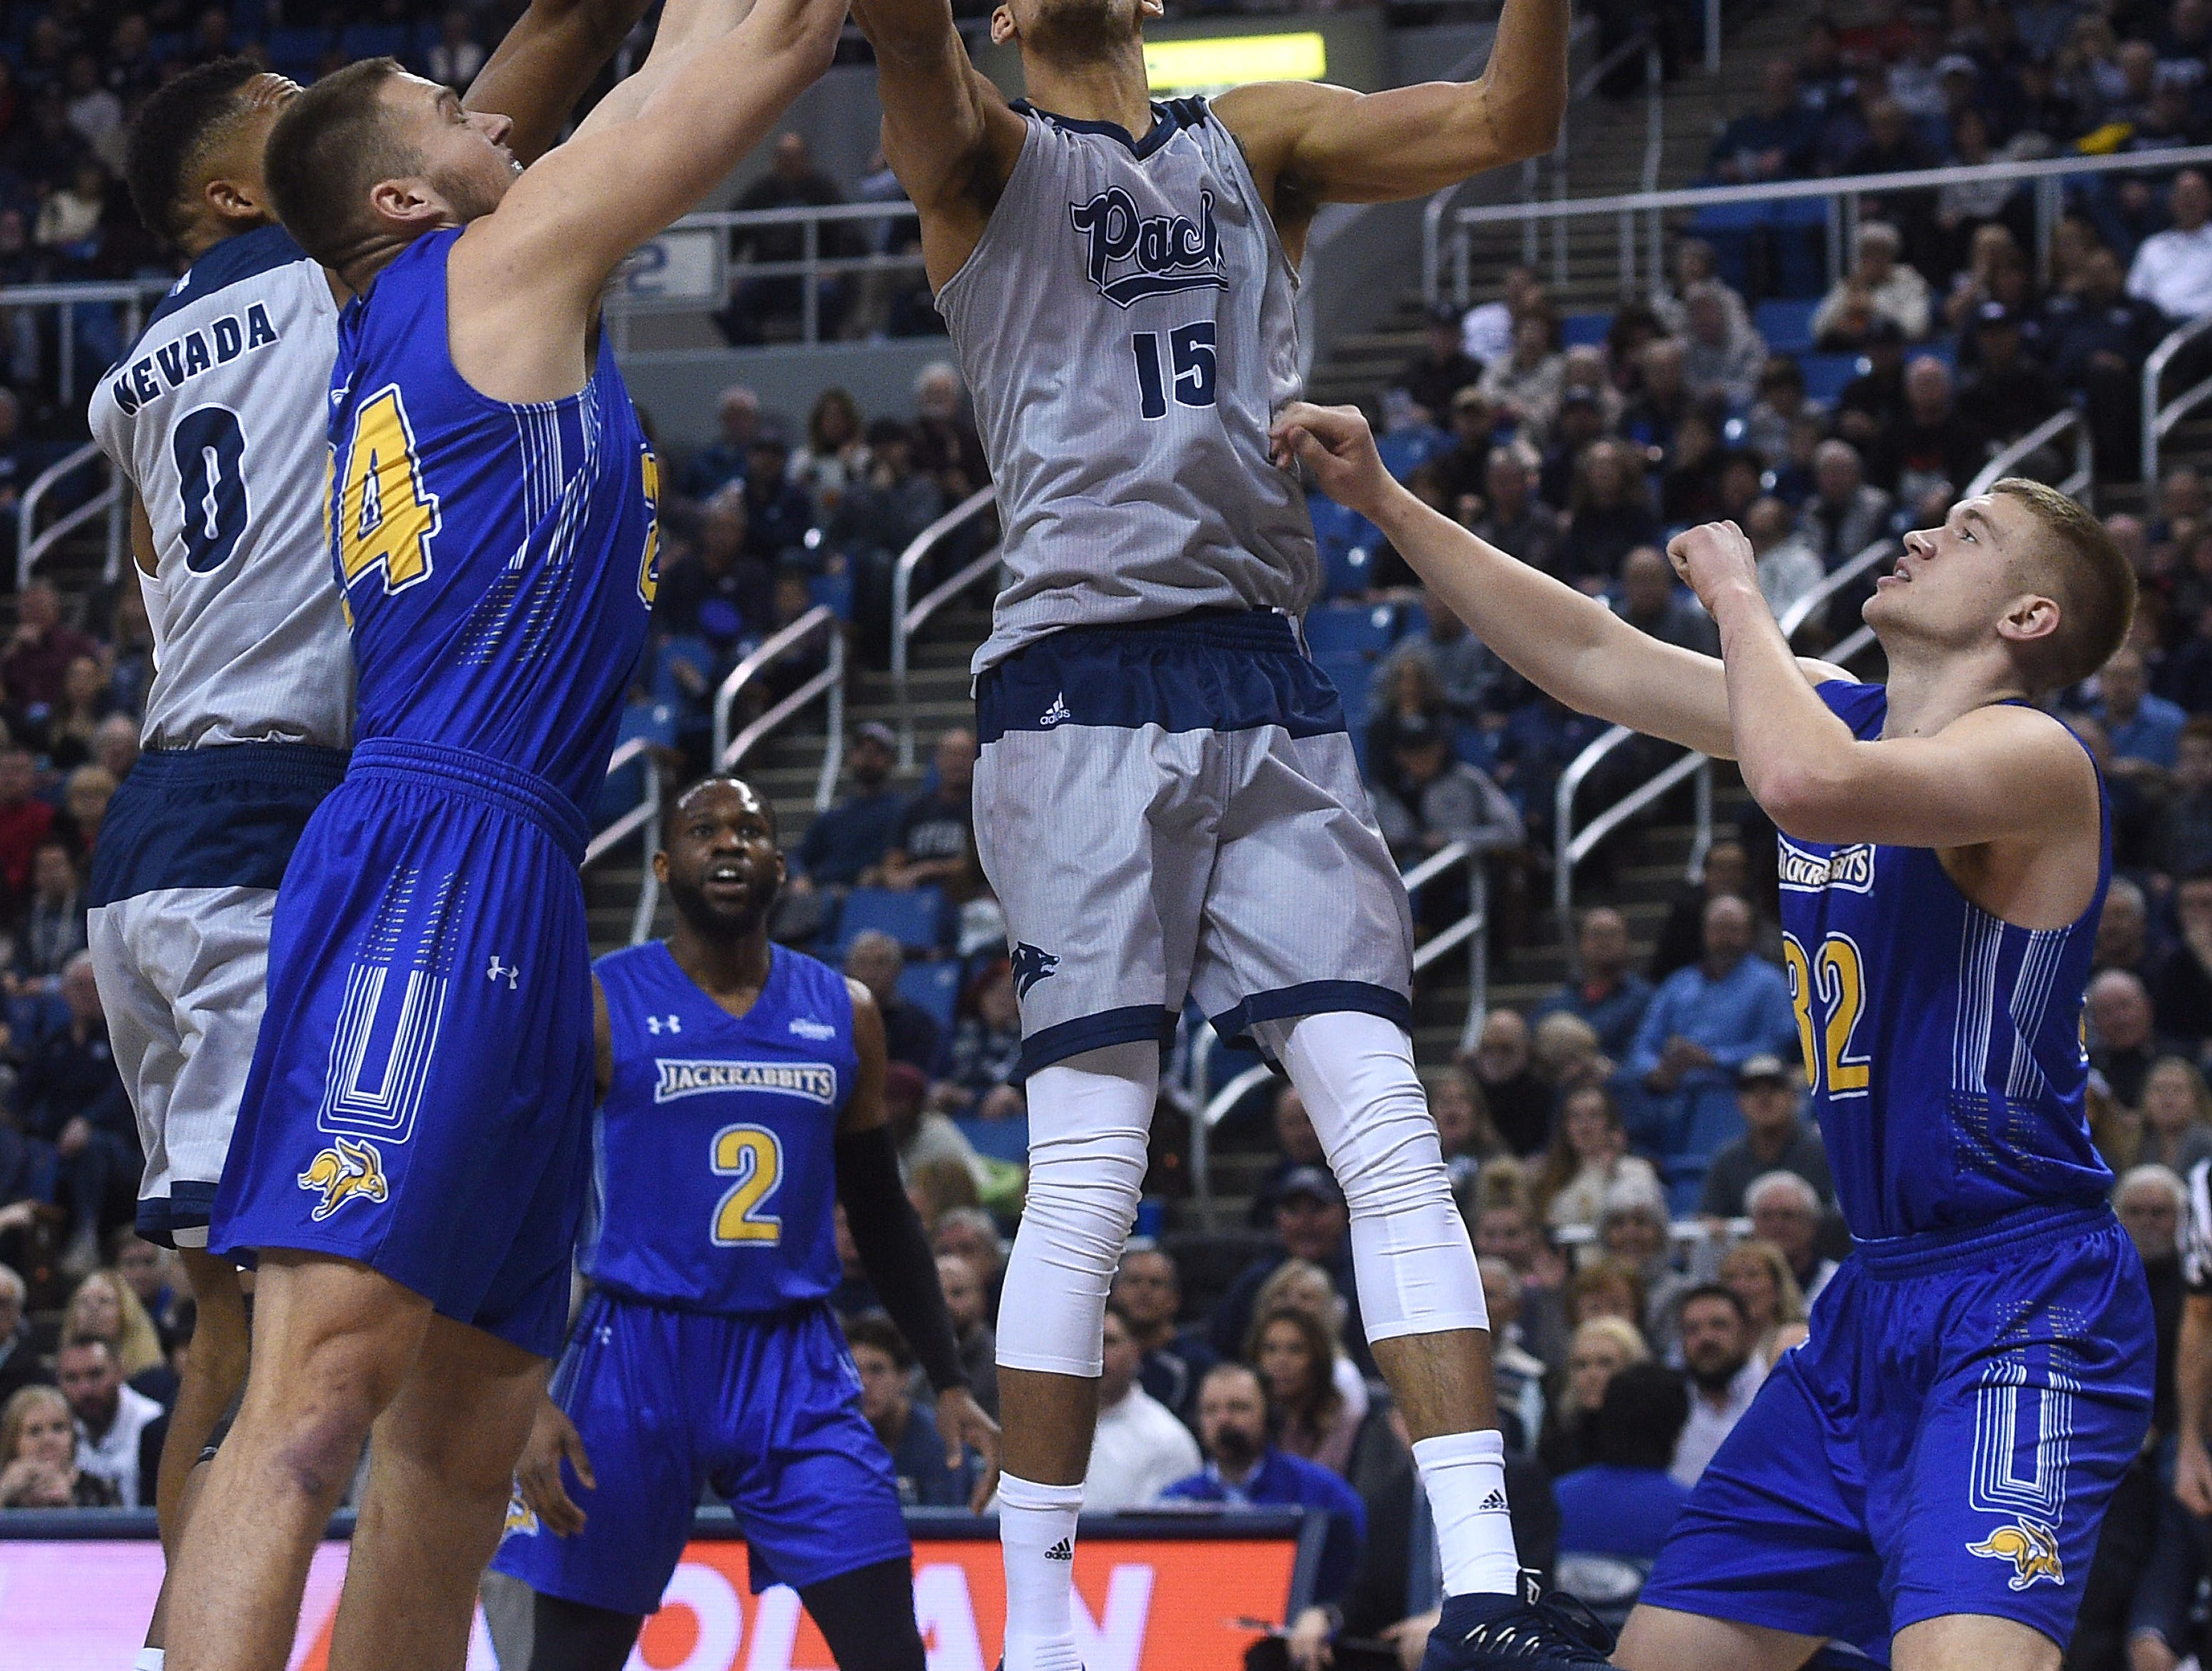 Nevada's Trey Porter (15) grabs a rebound while taking on South Dakota State during their basketball game at Lawlor Events Center in Reno on Dec. 15, 2018.